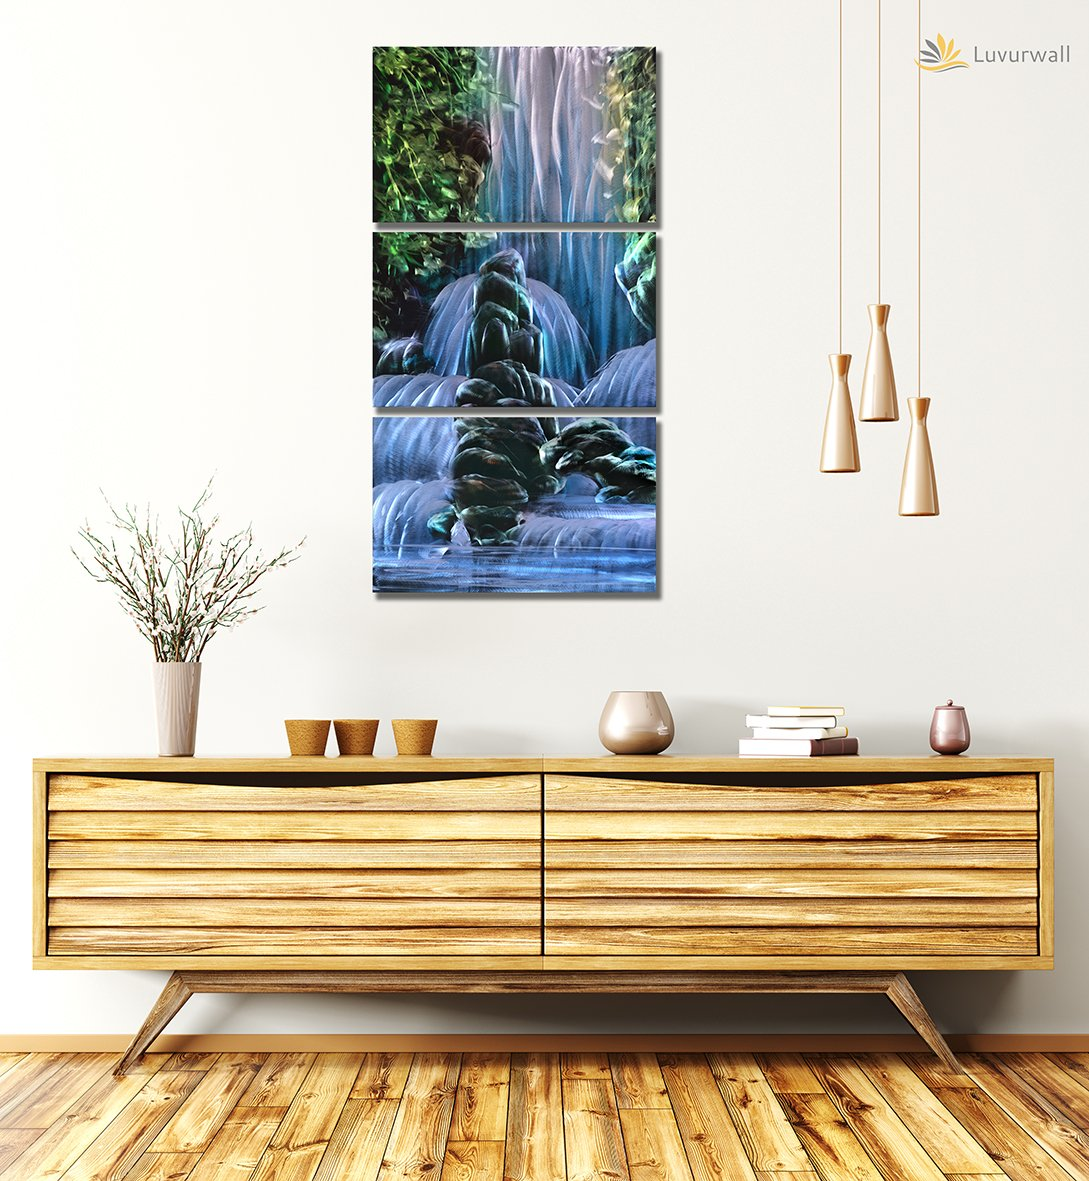 Luvurwall 3 Panel Water Falls Metal Wall Art, Metal Wall Art - Luvurwall